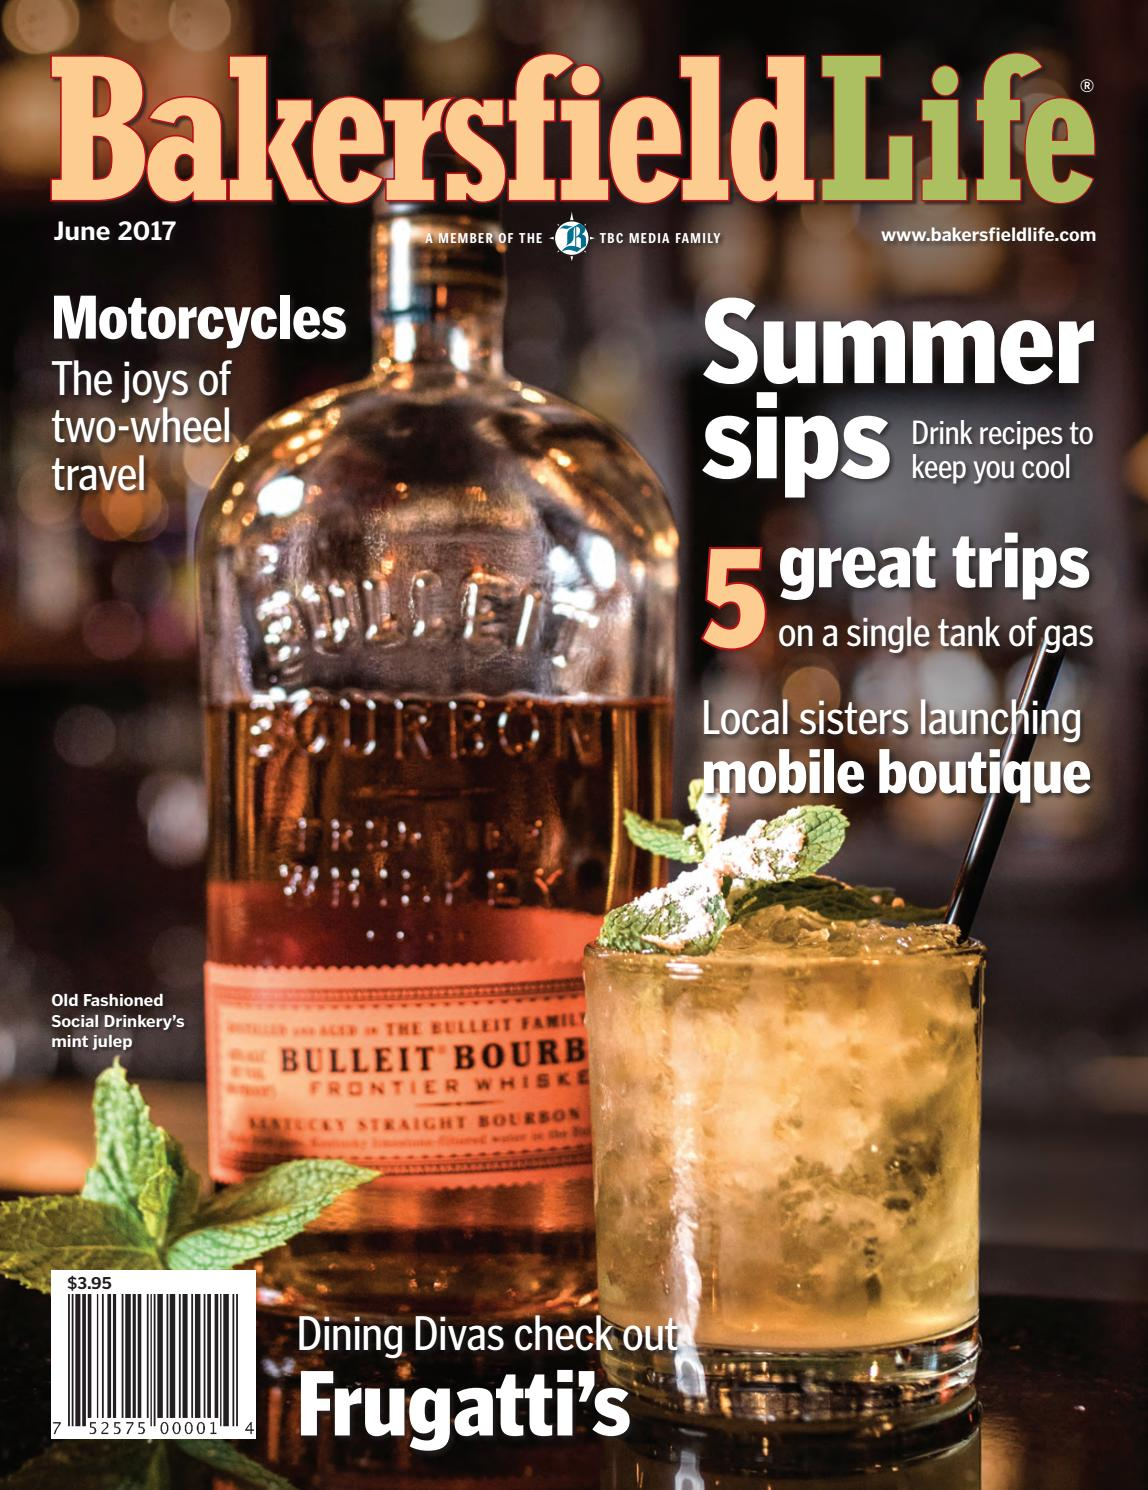 Bakersfield Life Magazine June 2017 By Tbc Media Specialty